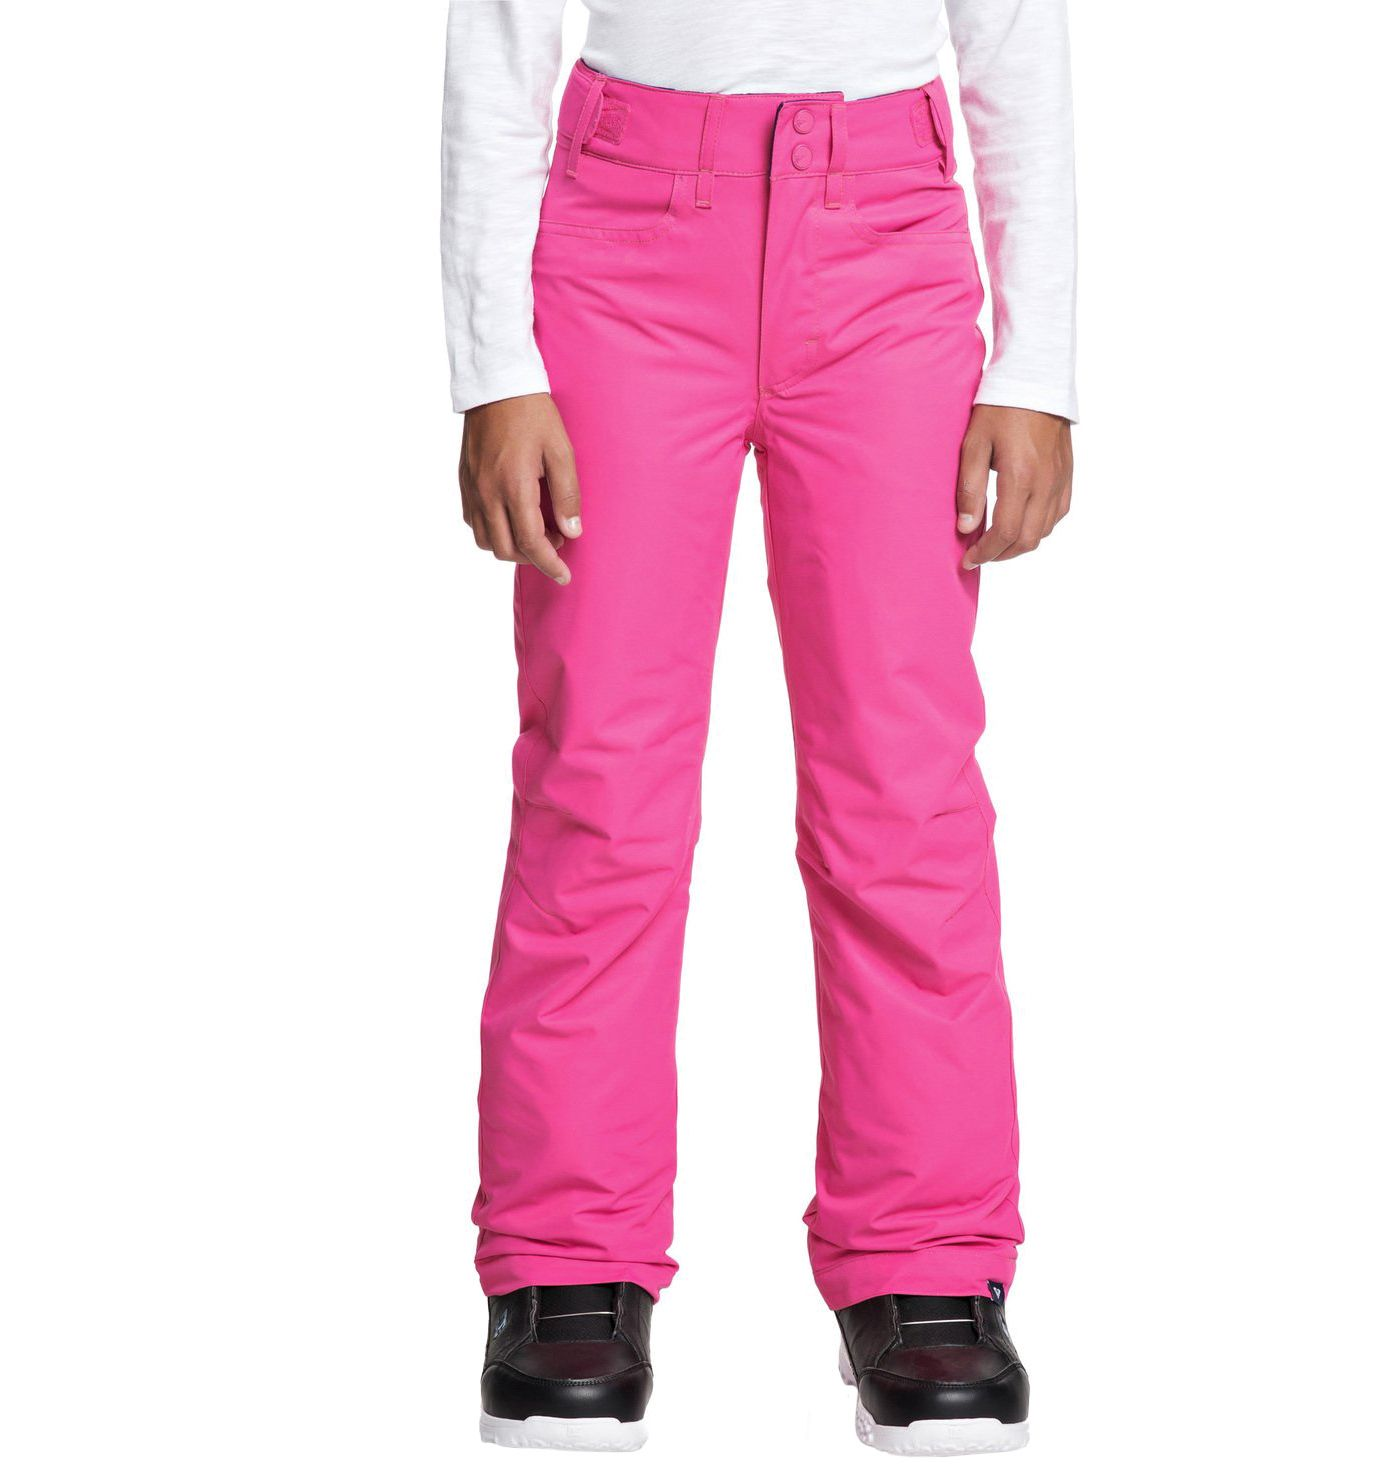 Roxy Girls' Backyard Snow Pants